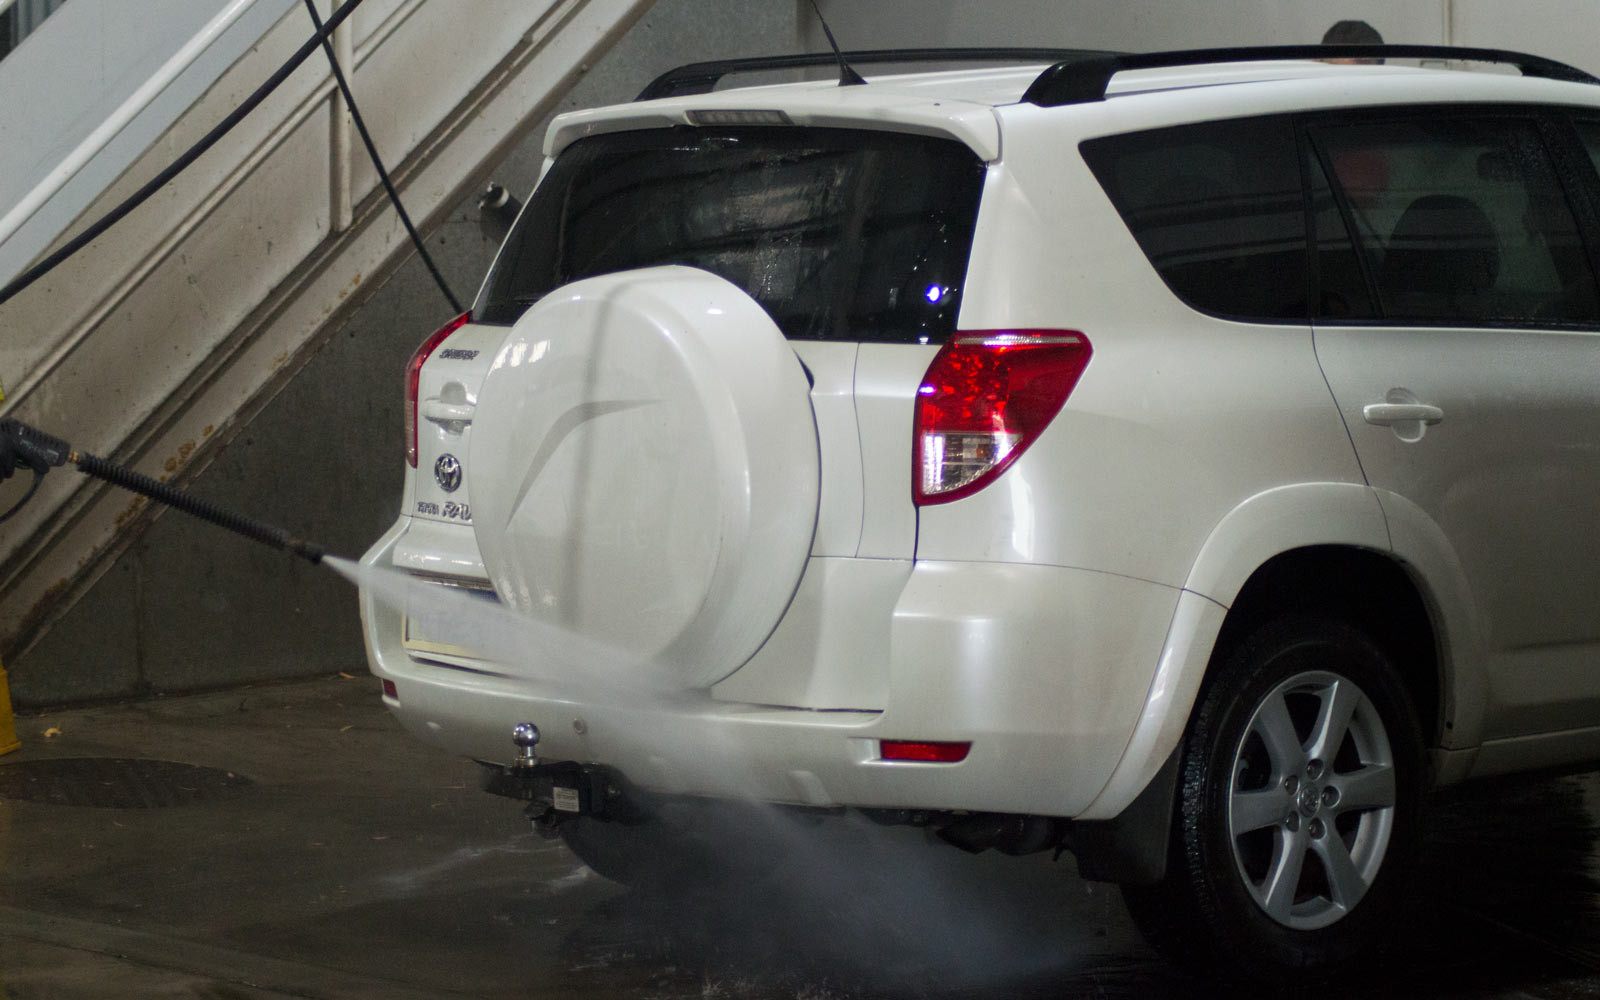 Impeccable Hand Car Wash & Detailing East Perth